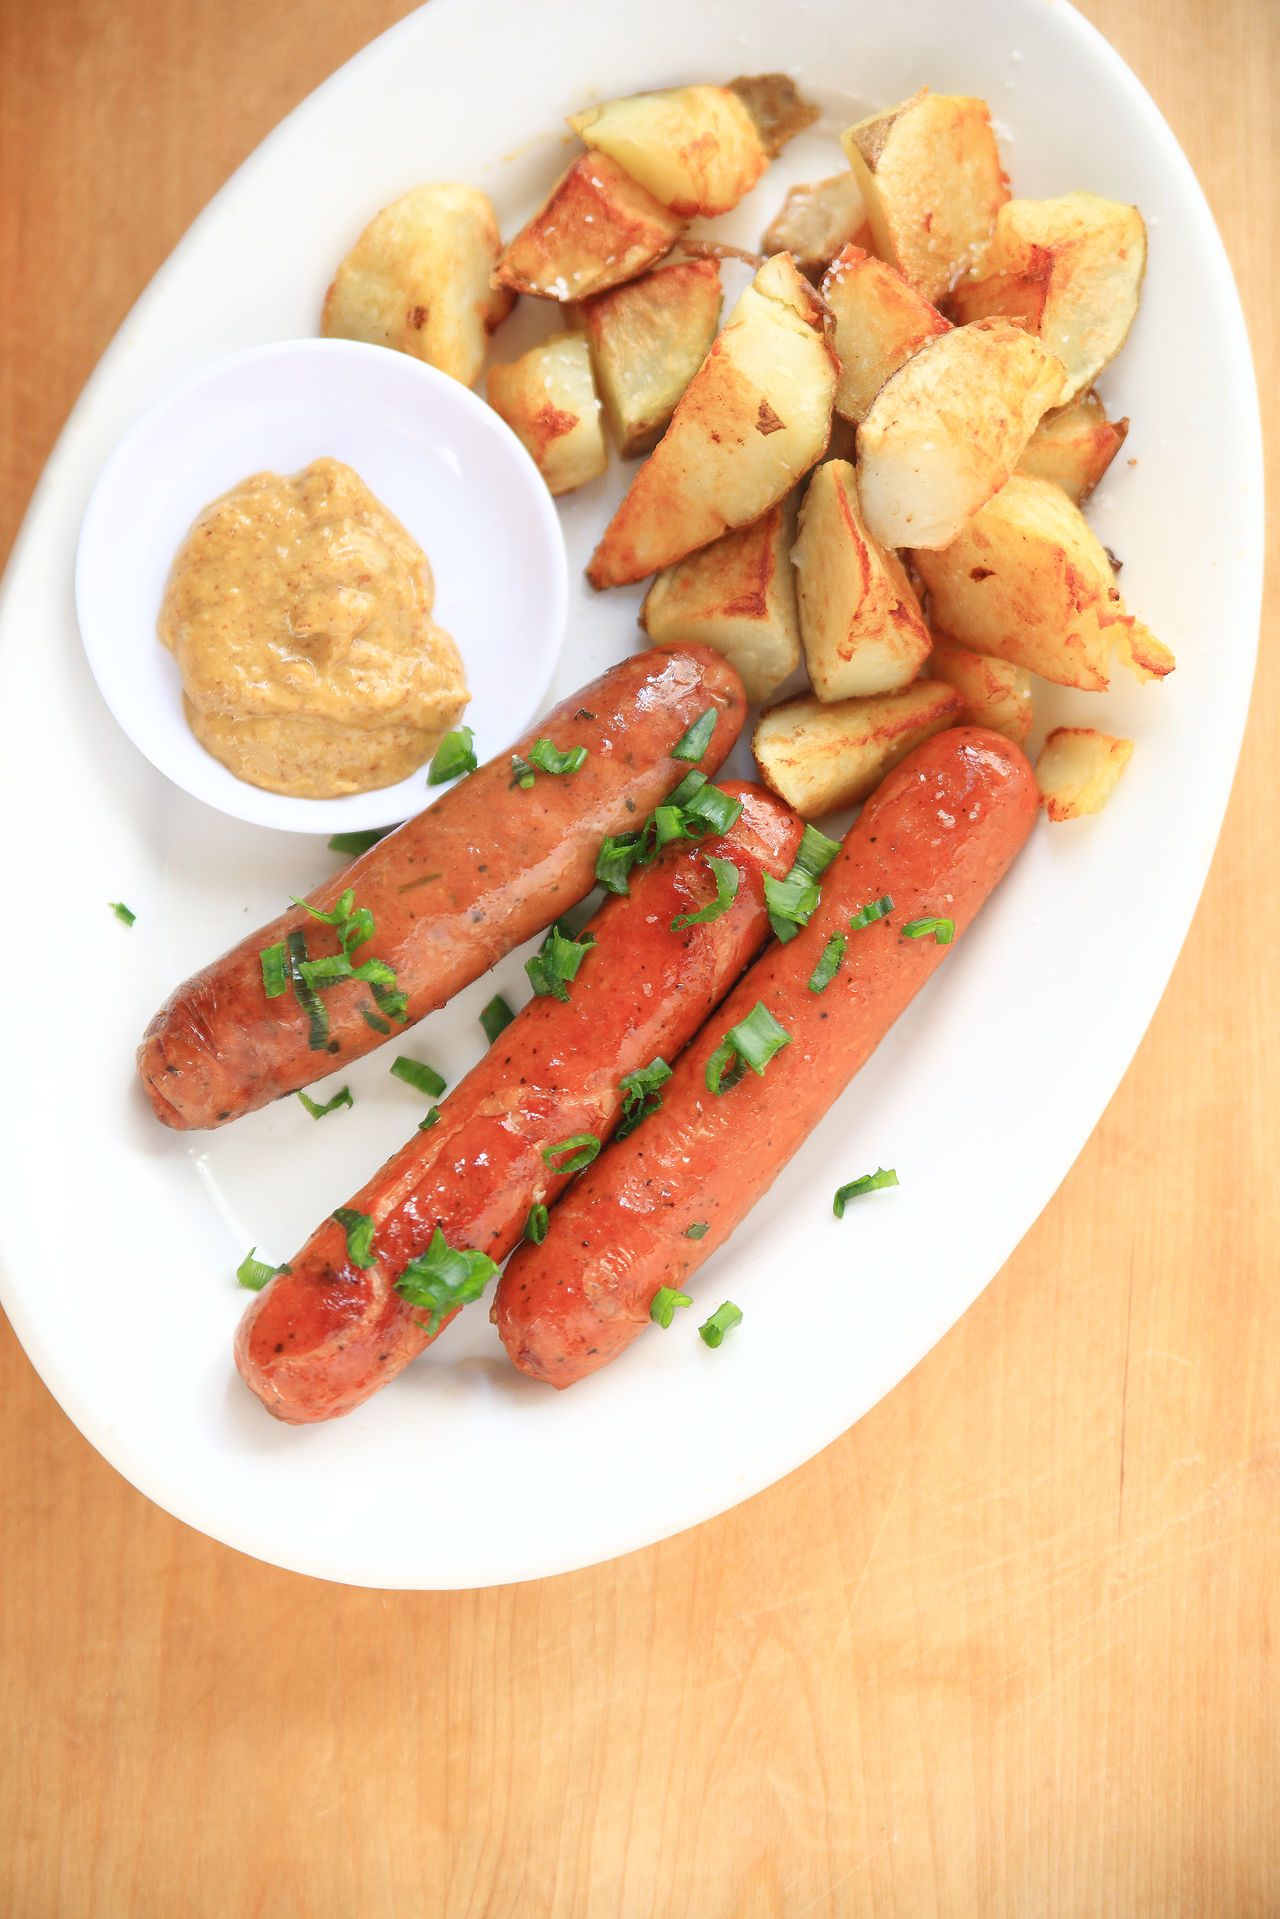 Sausages with scallions and potatoes Close-up Copy Space Delicious Dinner Fried Potatoes High Angle View Home Cooking Home Fries Home Fries Indoors  Lunch Meal Mustard Natural Light No People Platter Ready-to-eat Sausages Savory Food Scallions Table Vertical Wood Surface